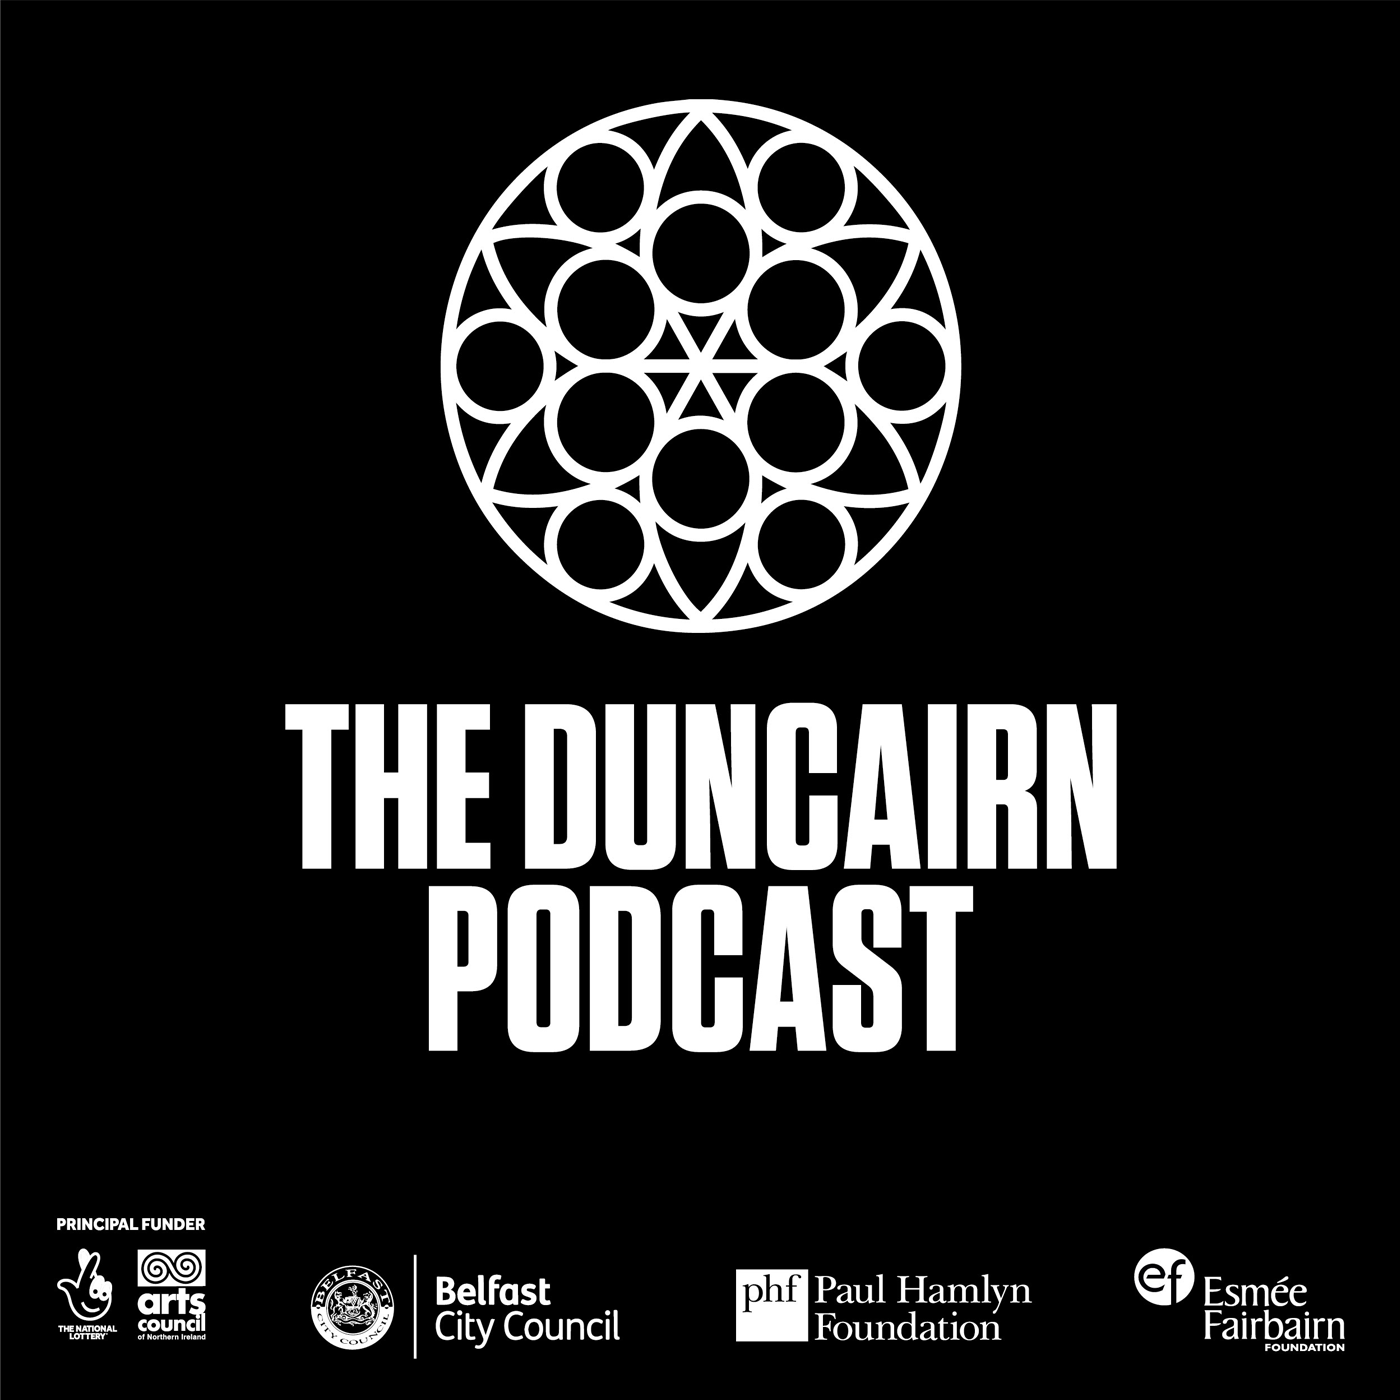 The Duncairn Podcast podcast show image